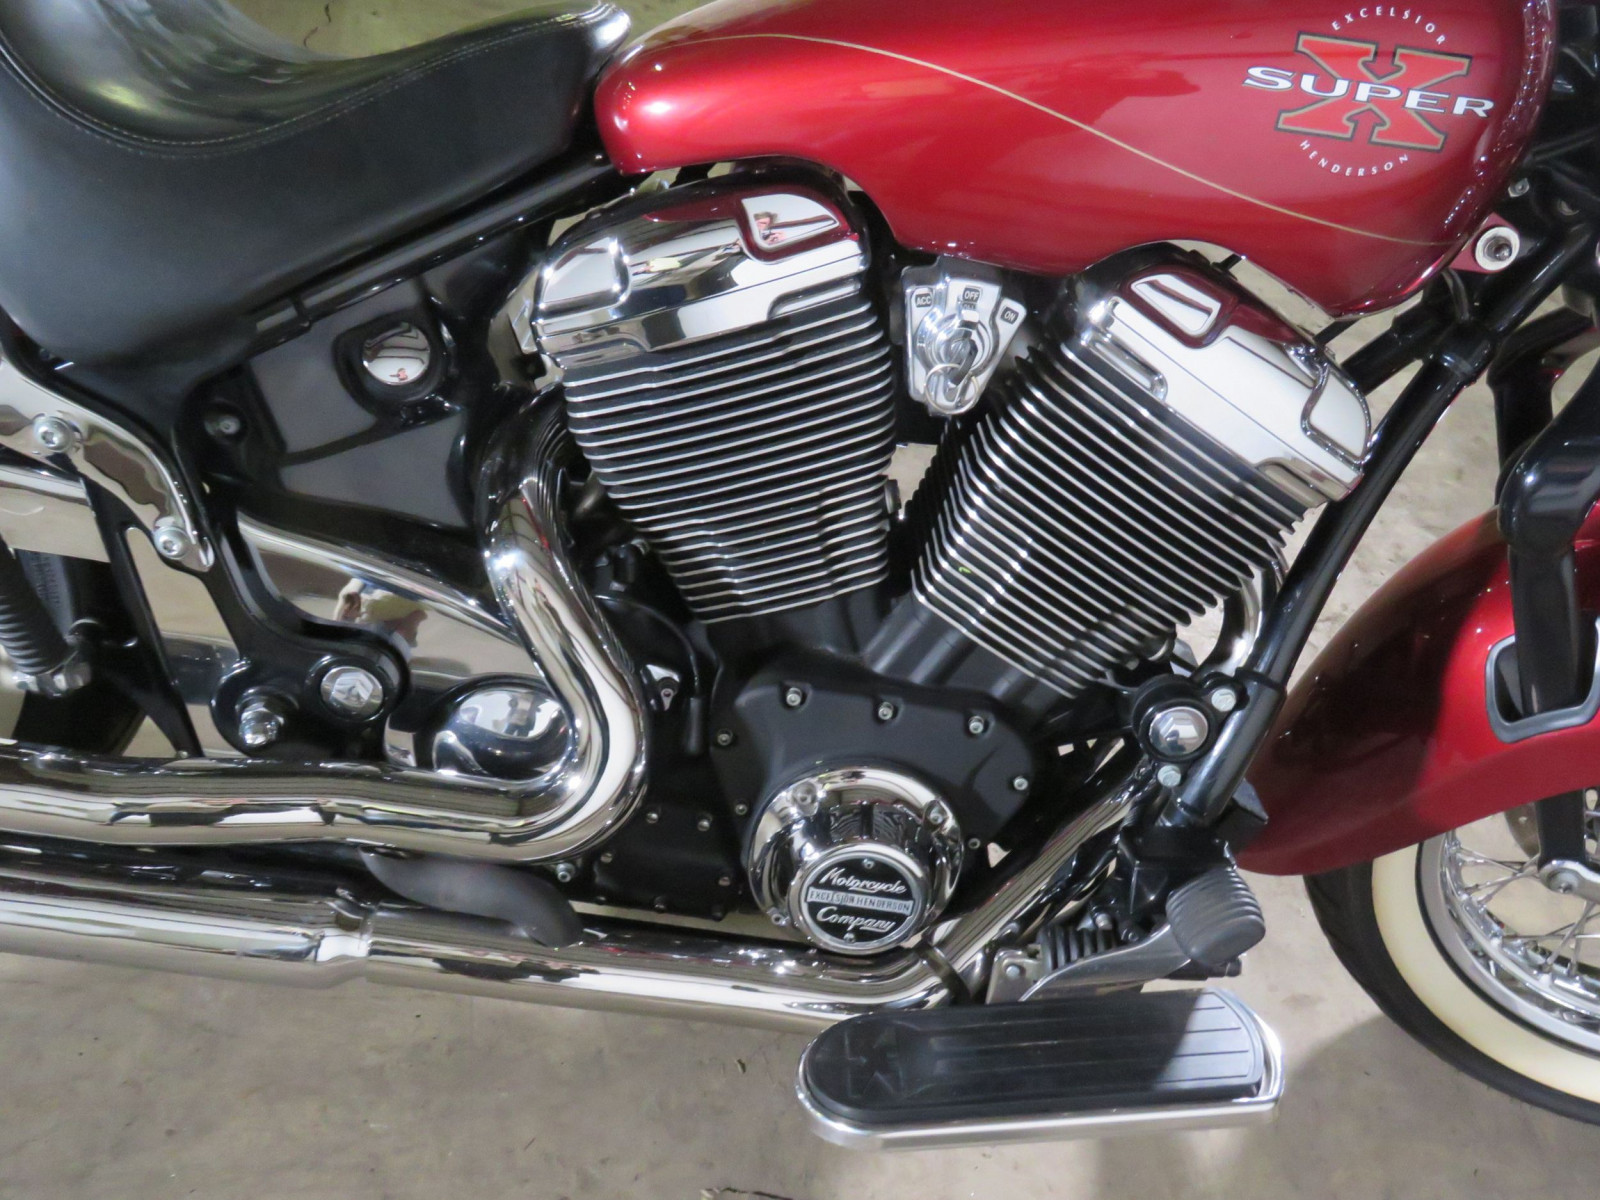 1999 Excelsior Henderson Super X Motorcycle Deadwood Edition - Image 7